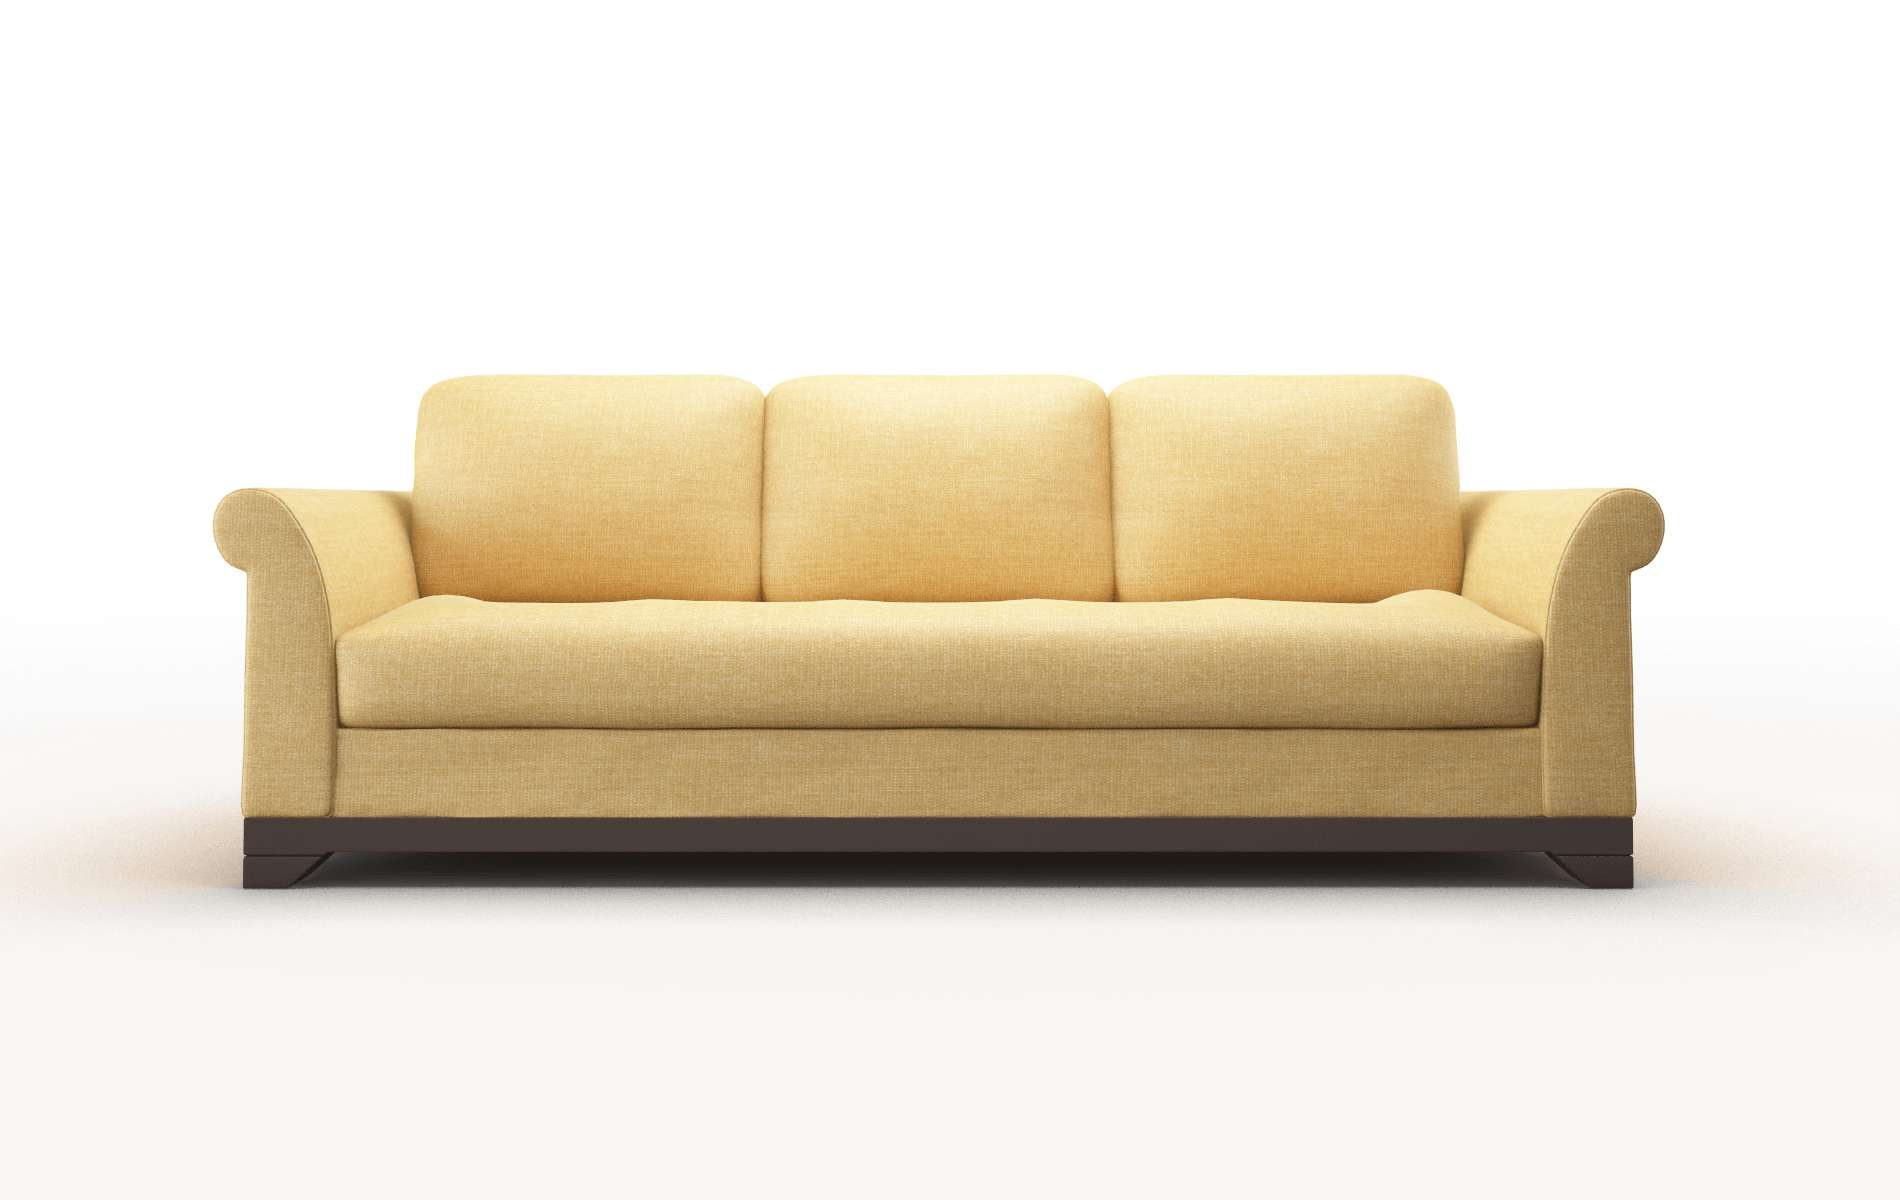 Denver Keylargo Honey Sofa espresso legs 1